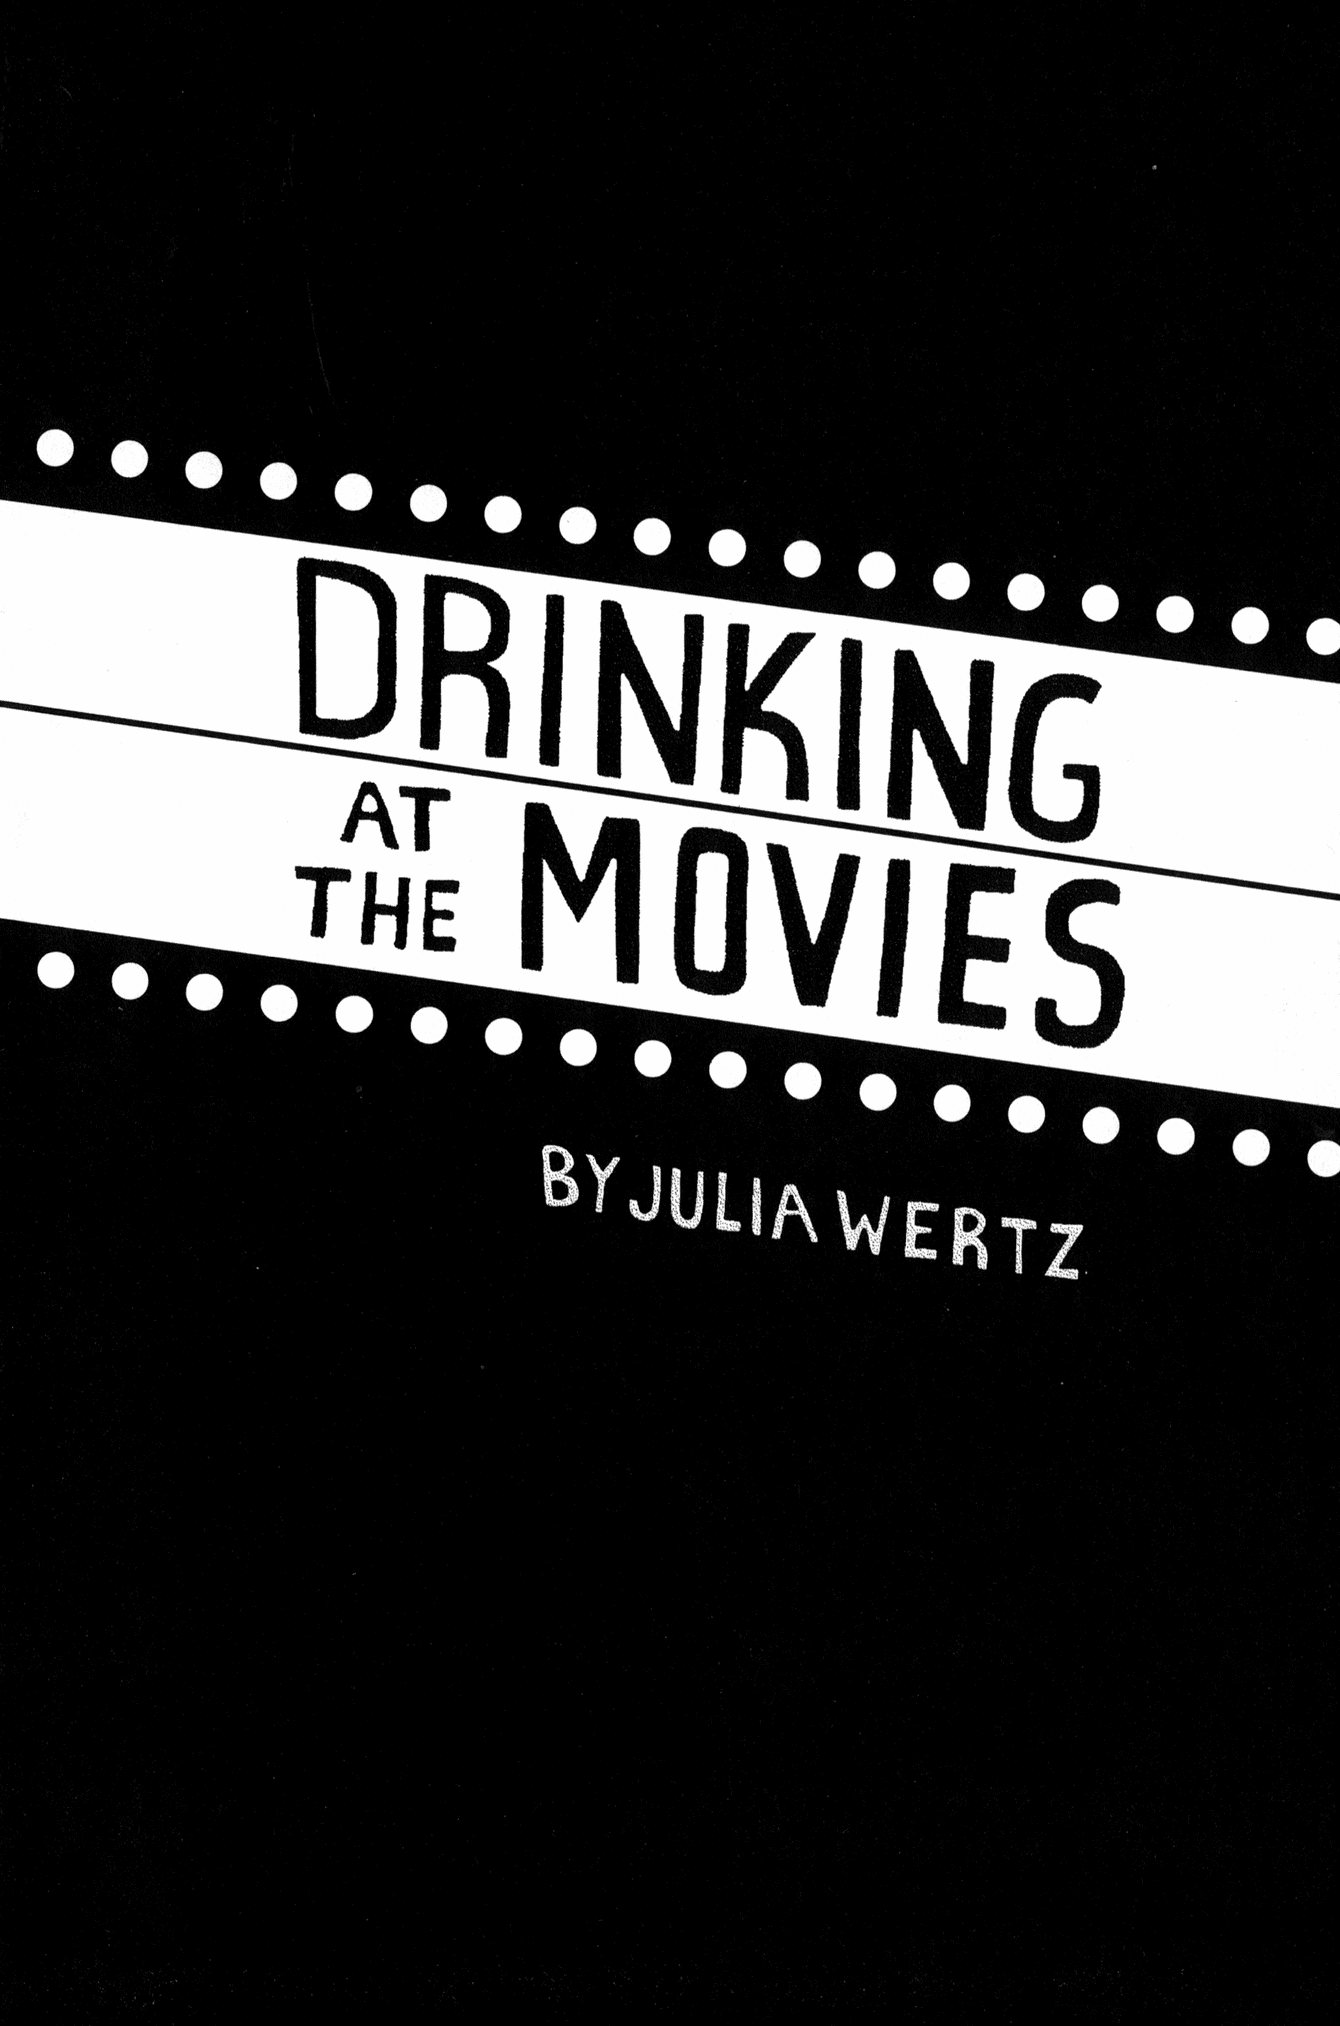 Read online Drinking at the Movies comic -  Issue # Full - 7